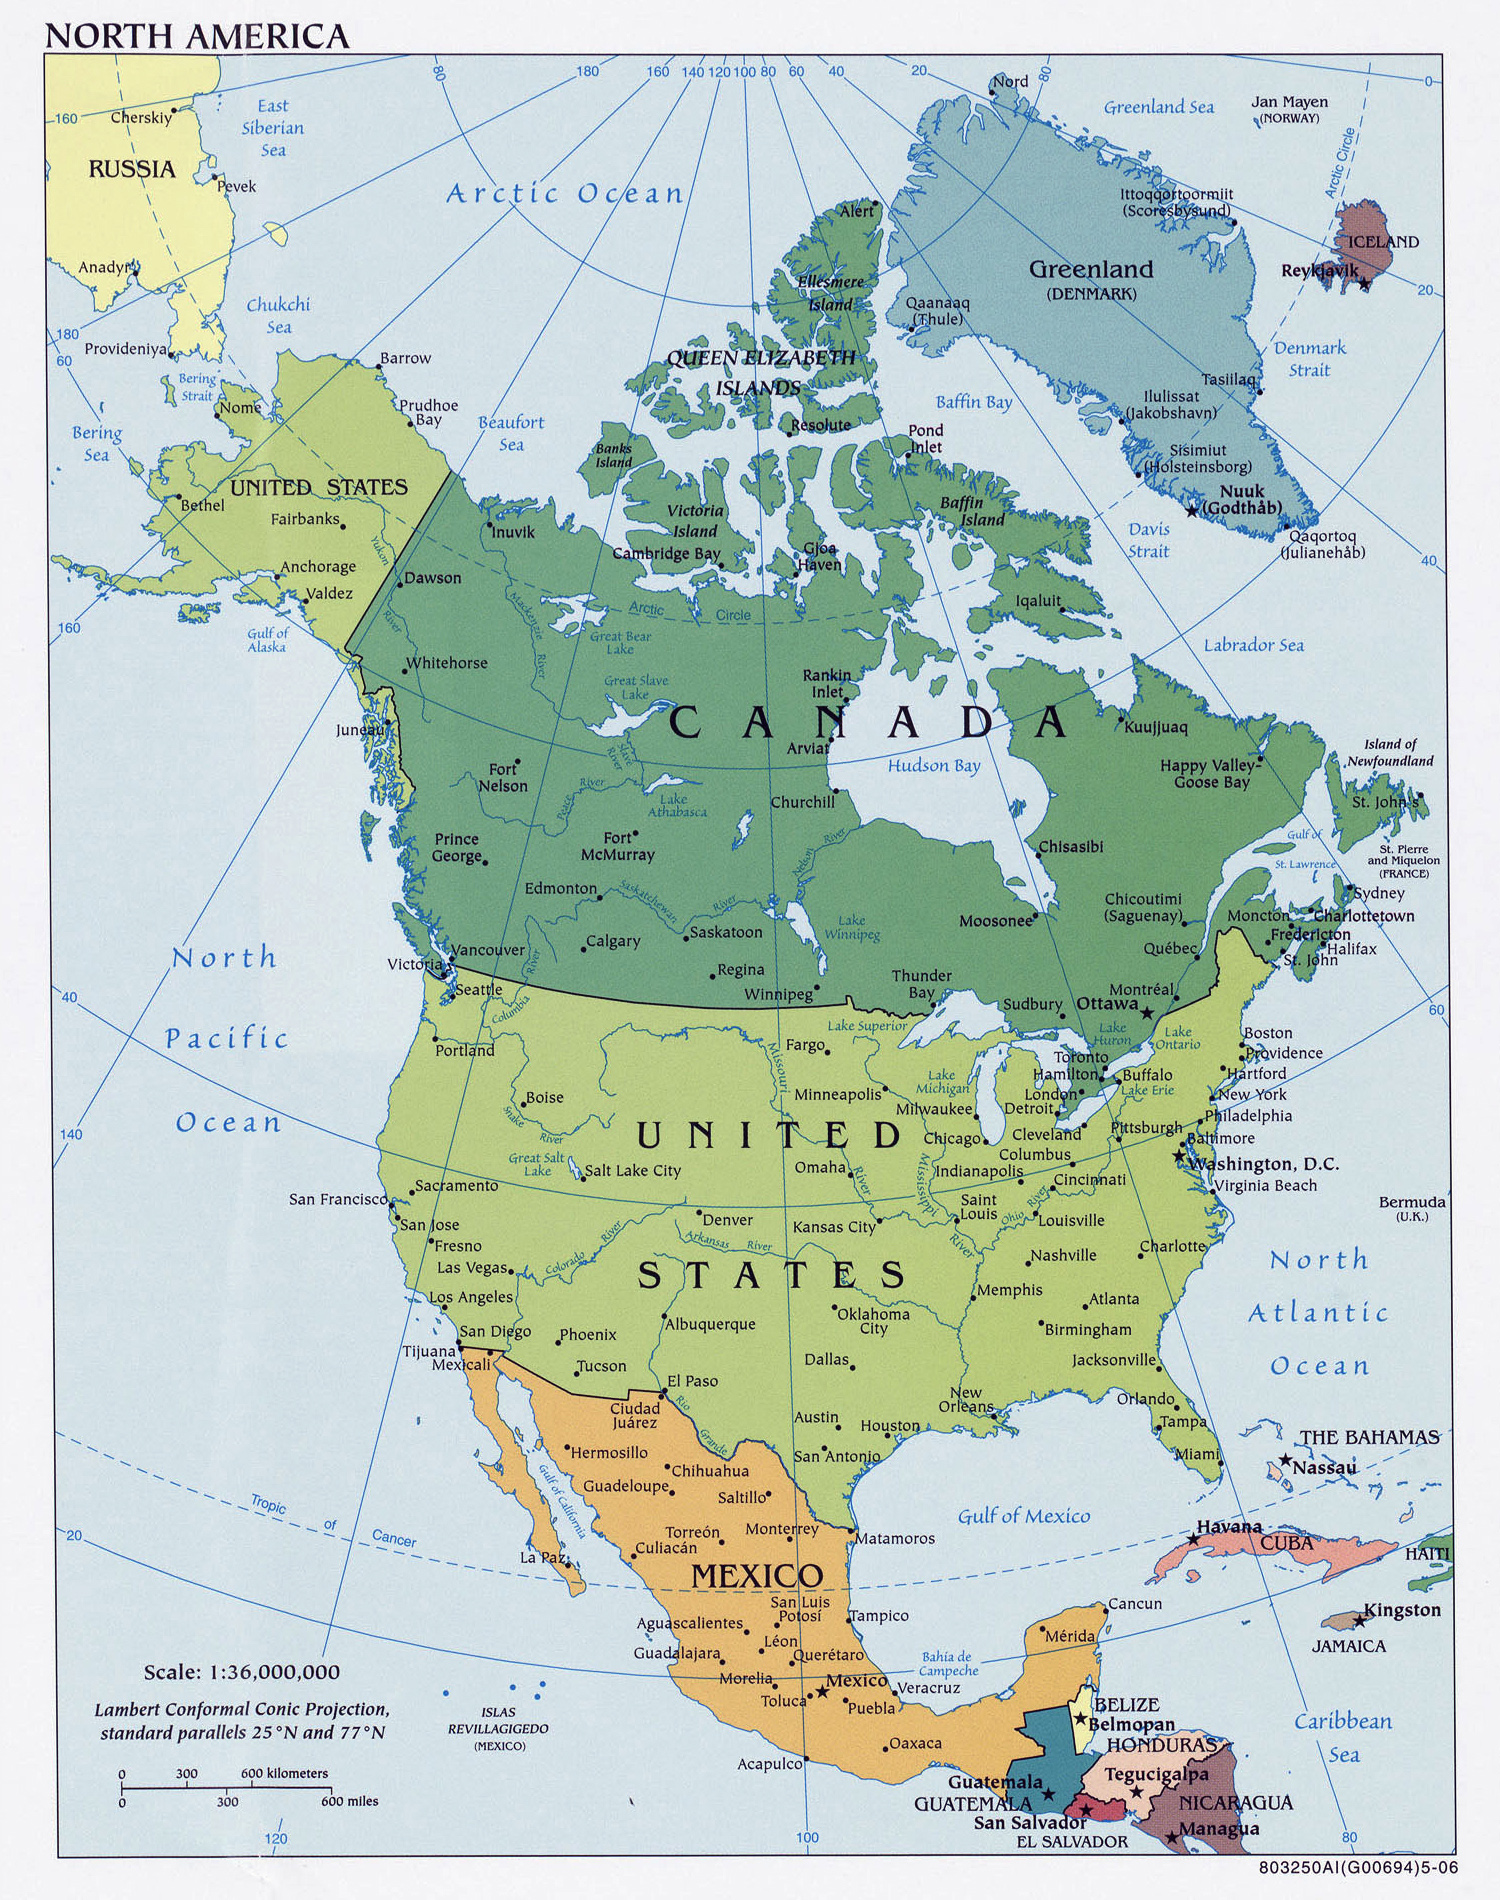 North America detailed political map Detailed political map of North America